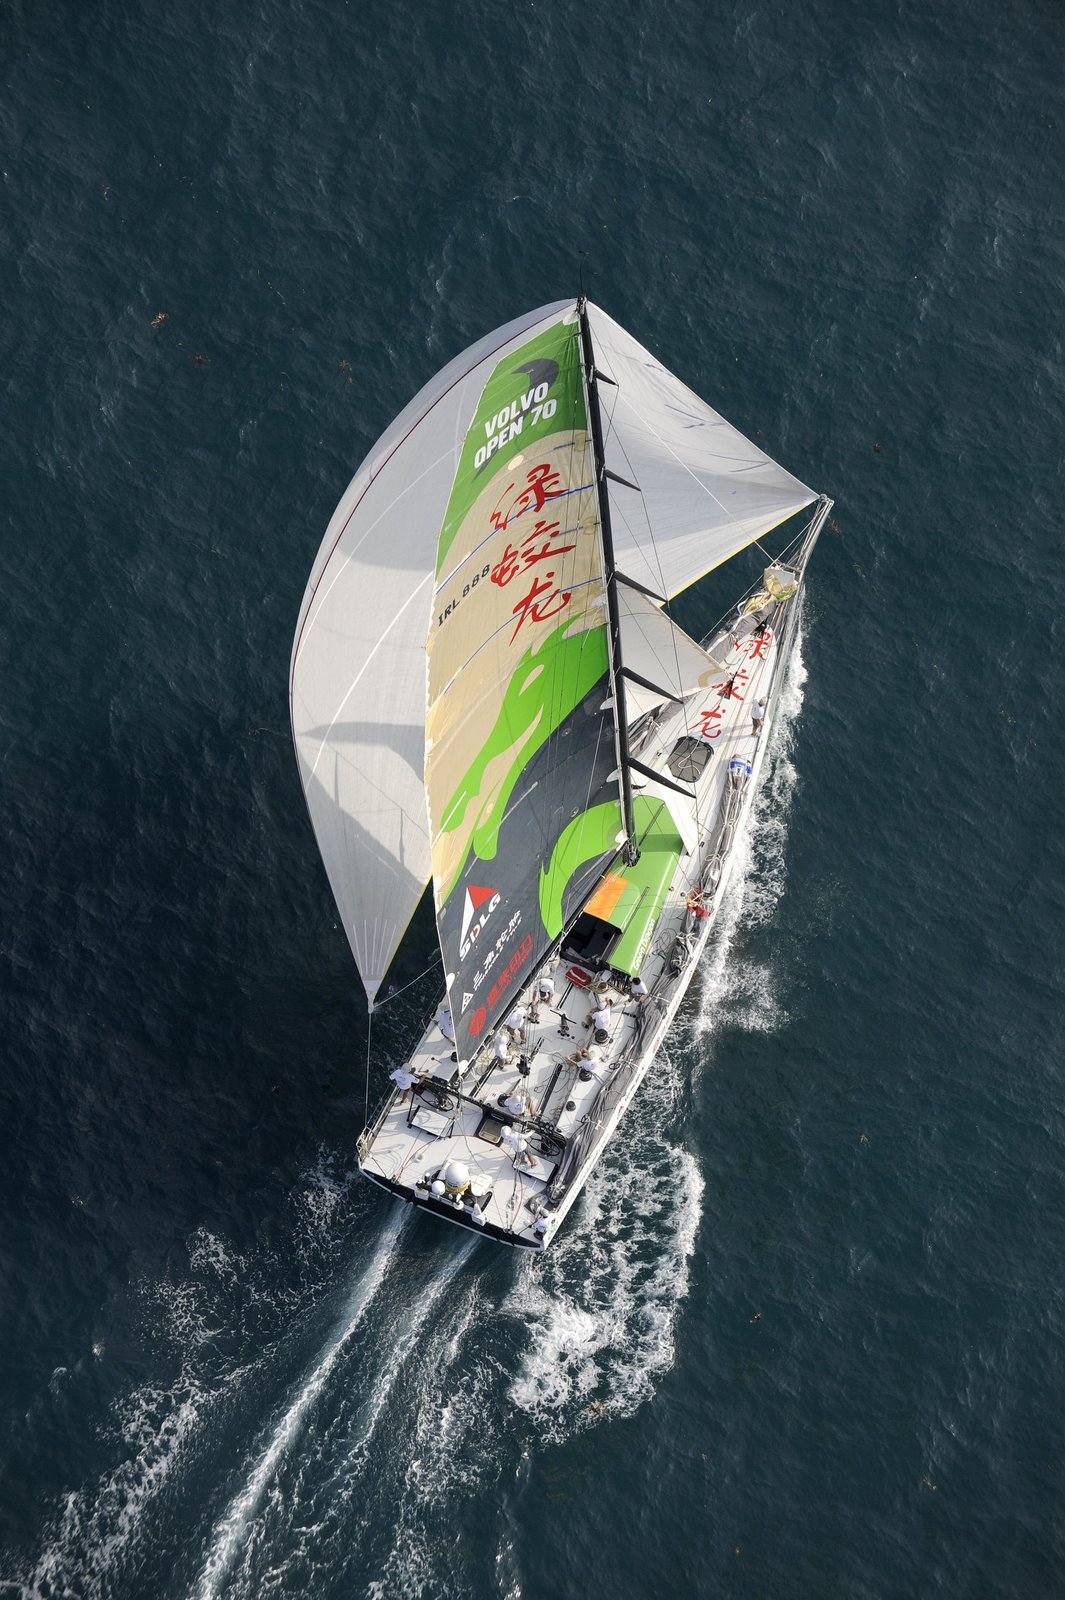 For EDITORIAL USE only, please credit: Rick Tomlinson/Volvo Ocean Race. Green Dragon at the start of leg 3 of the Volvo Ocean race, from Cochin, India to Singapore The Volvo Ocean Race 2008-09 will be the 10th running of this ocean marathon. Starting from Alicante in Spain, on 4 October 2008, it will, for the first time, take in Cochin, India, Singapore and Qingdao, China before finishing in St Petersburg, Russia for the first time in the history of the race. Spanning some 37,000 nautical miles, visiting 11 ports over nine months, the Volvo Ocean Race is the world's premier ocean yacht race for professional racing crews. For all media enquiries please contact Lizzie Ward on +44 (0)1489 554 832 or email lizzie.ward@volvooceanrace.org. For all photographic enquiries, please contact Tim Stonton on +44 (0)1489 554 867 or email tim.stonton@volvooceanrace.org. For further images, please go to http://images.volvooceanrace.org